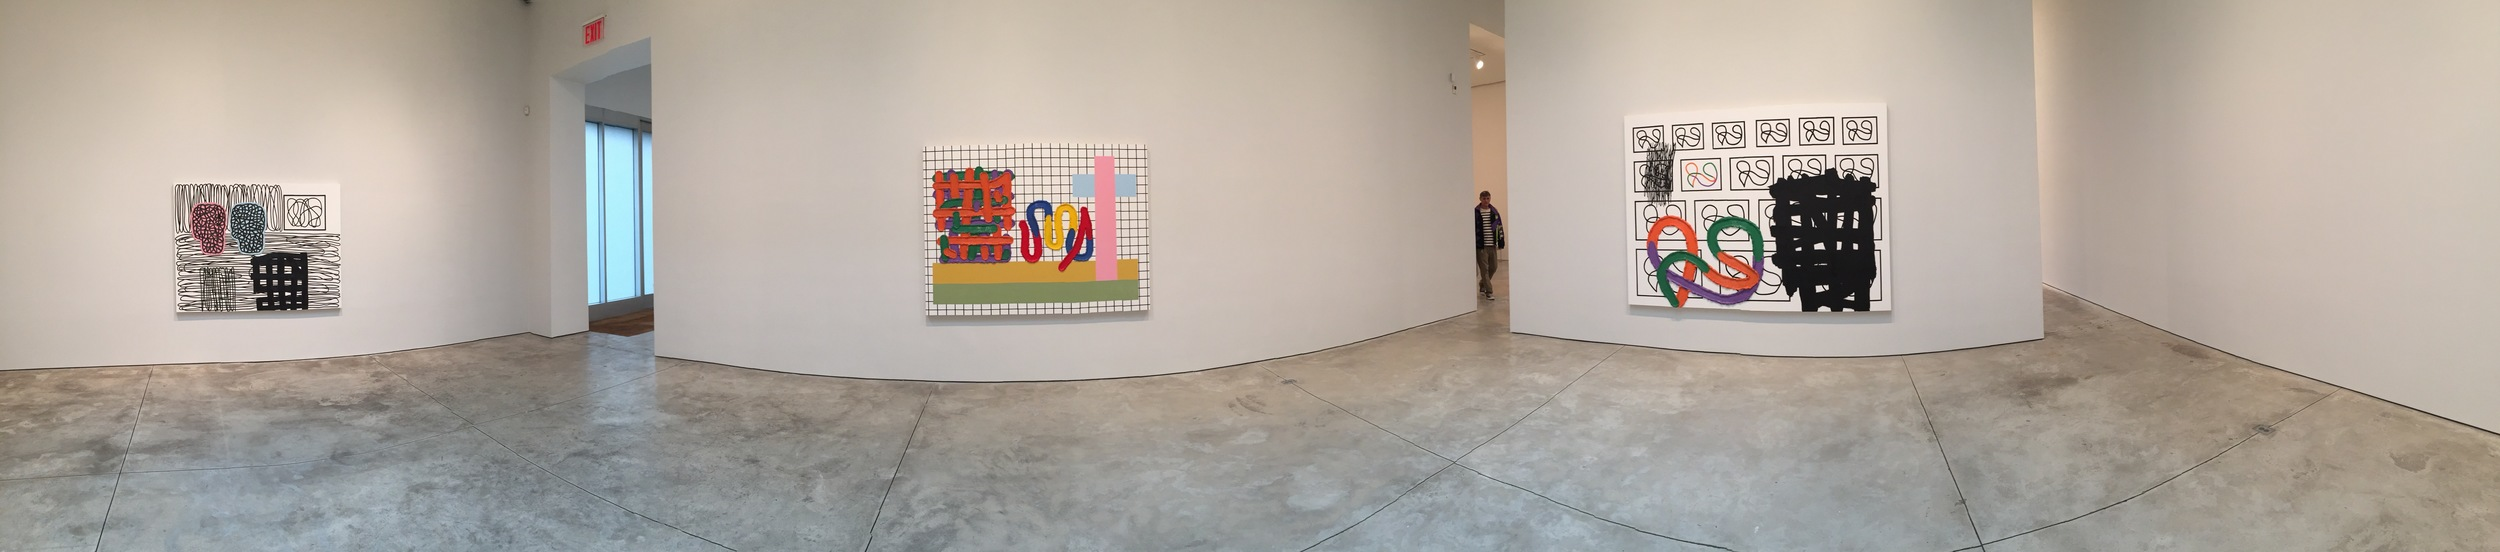 Exhibition Image, Jonathan Lasker, Cheim & Reid, New York   Photo Credit: Cincala Art Advisory